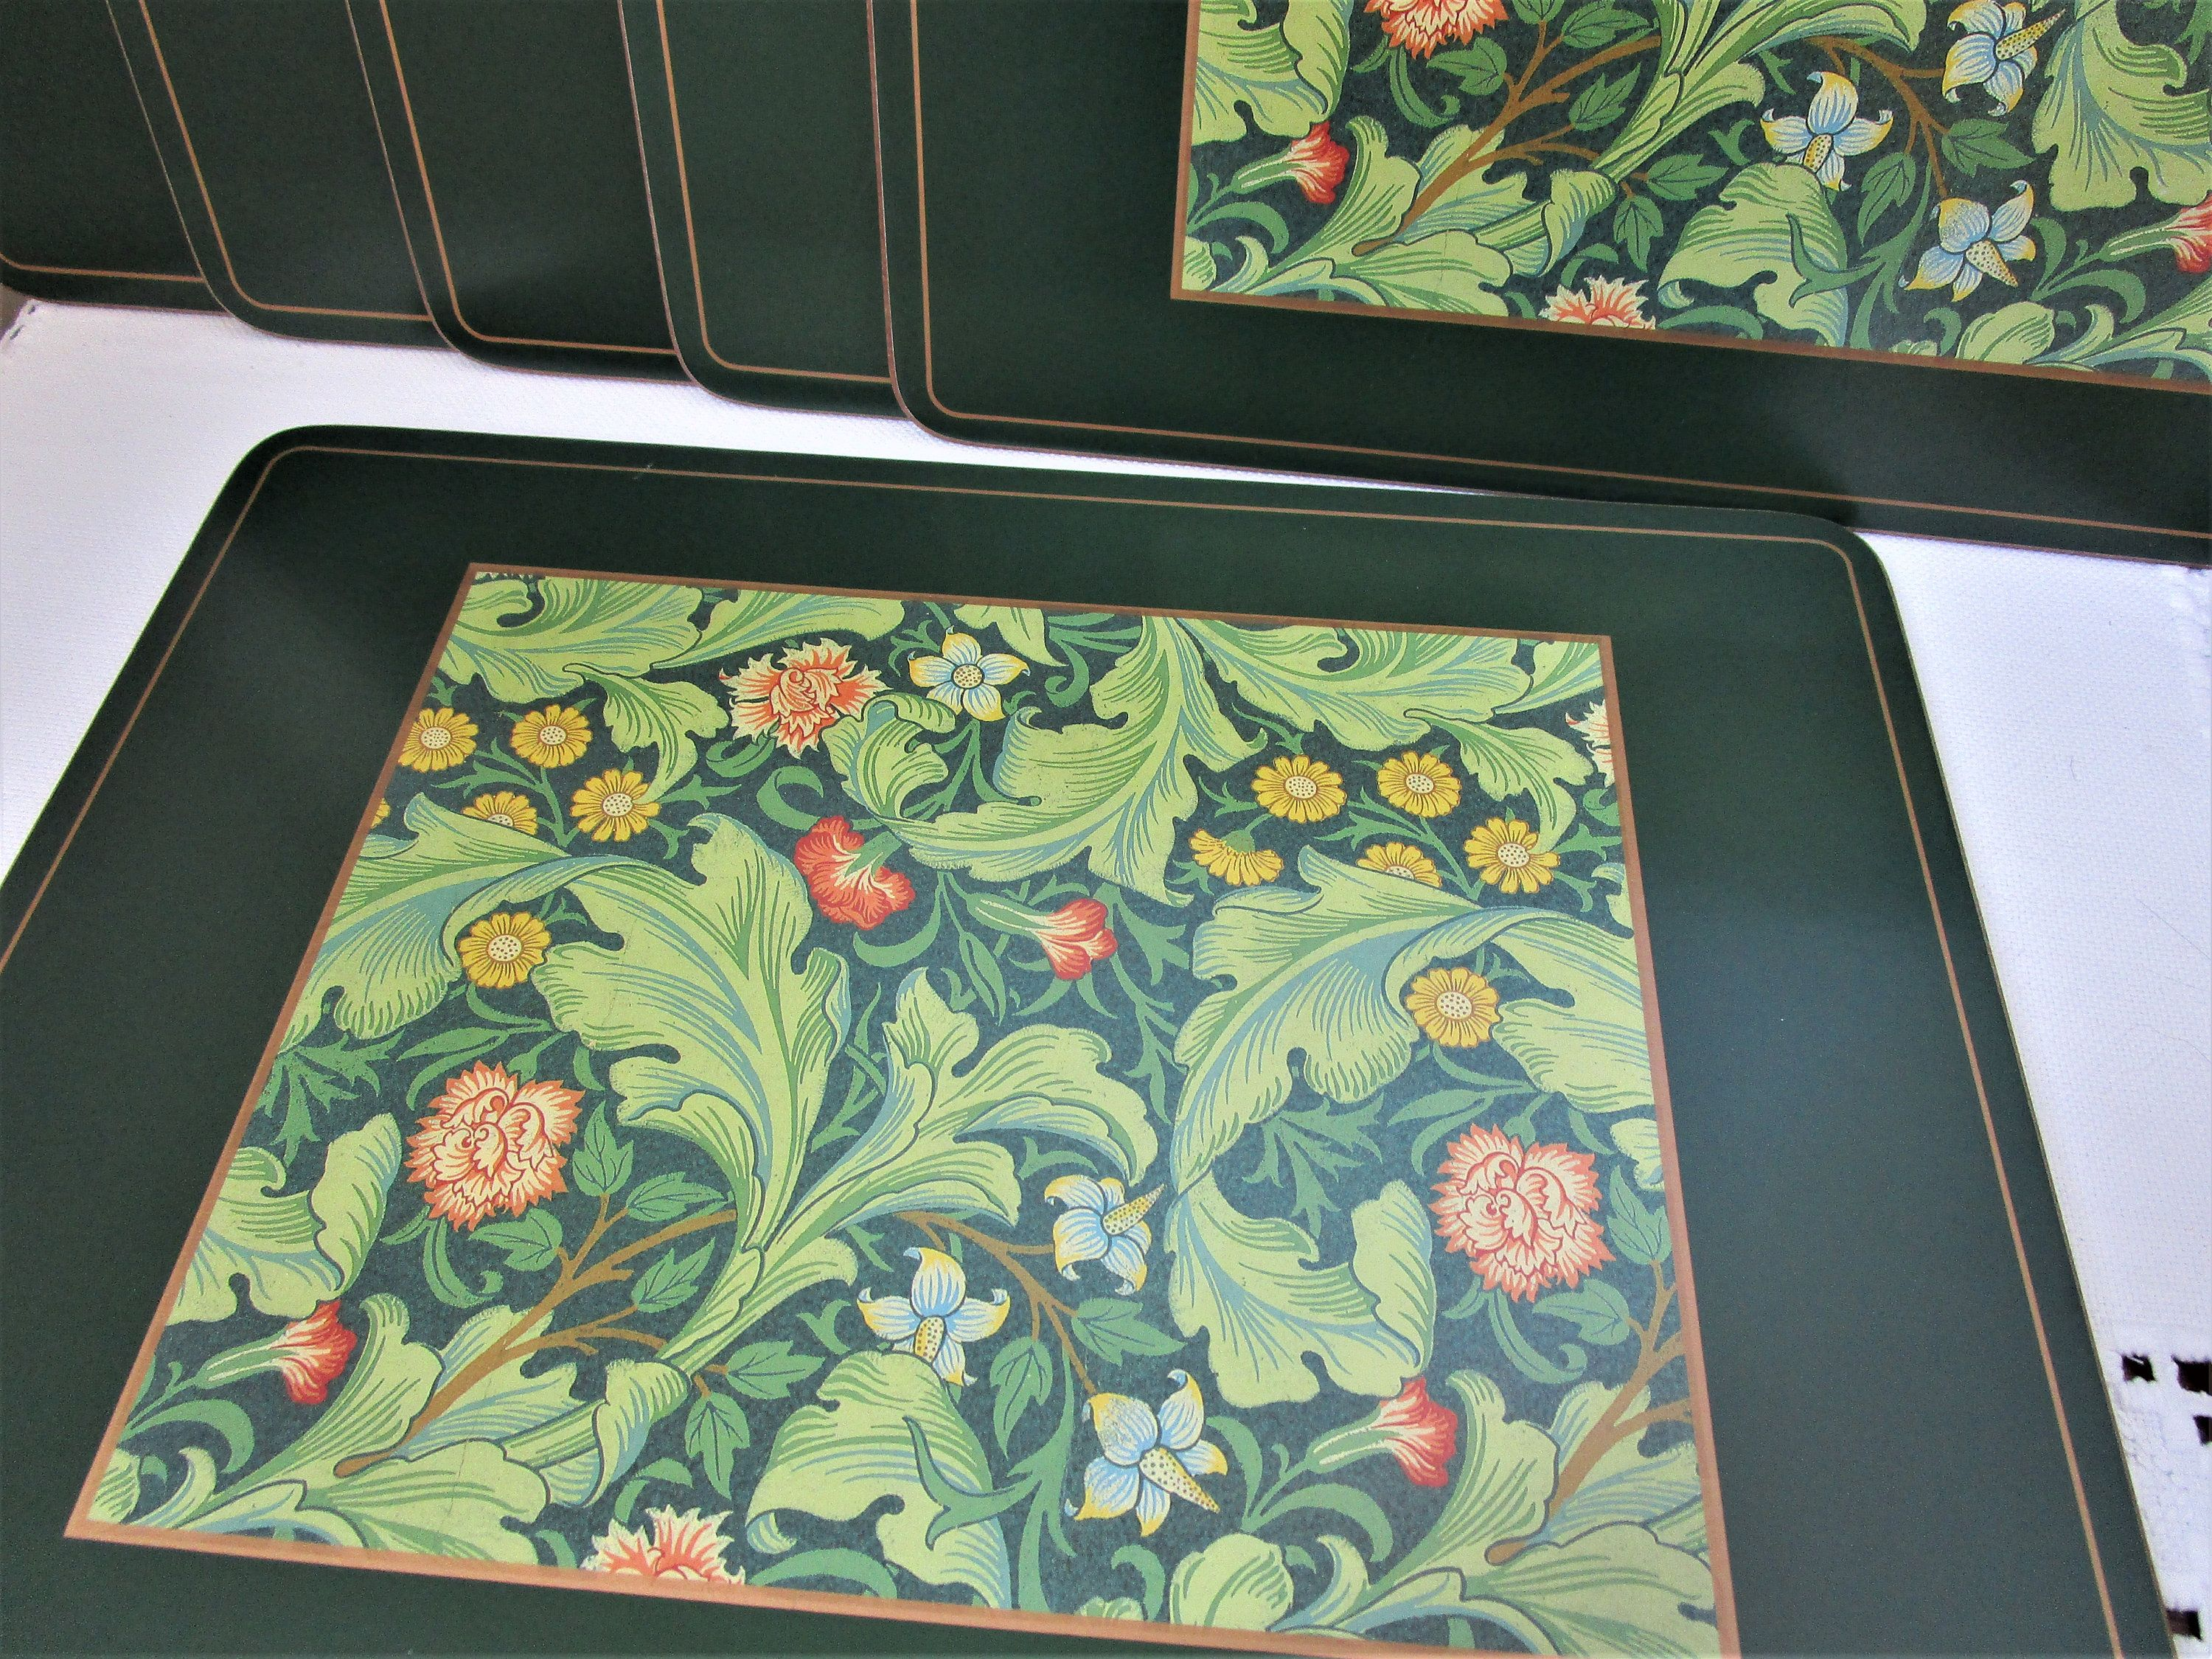 Set Of Six Vintage Placemats William Morris Design Tablemats Cork Backed Mats Dinner Mats Arts Crafts Style Home Decor Vintage Home Decor William Morris Designs Placemats Arts Crafts Style